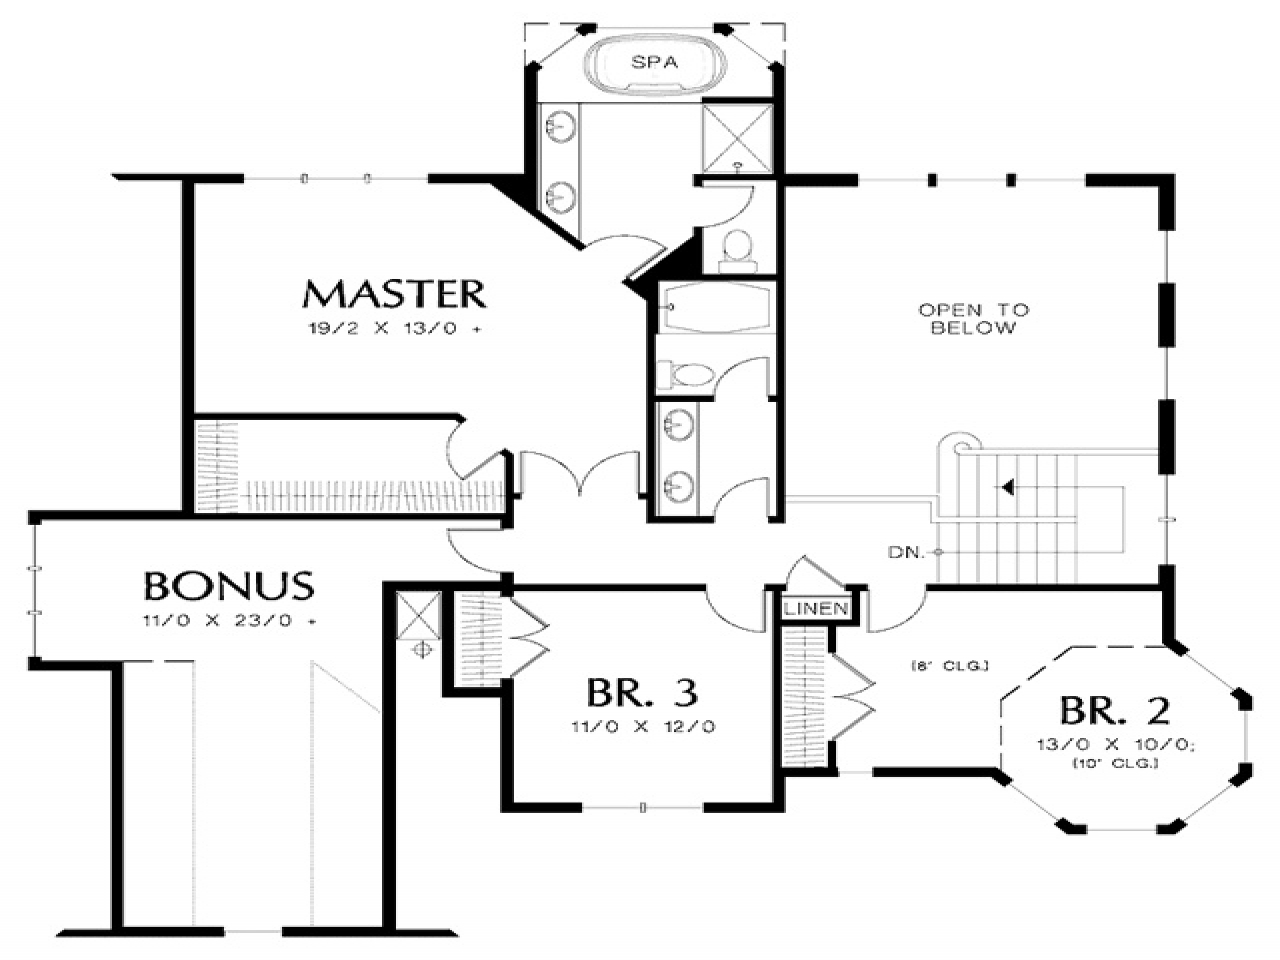 Small victorian house floor plans queen anne victorian for Small victorian style house plans